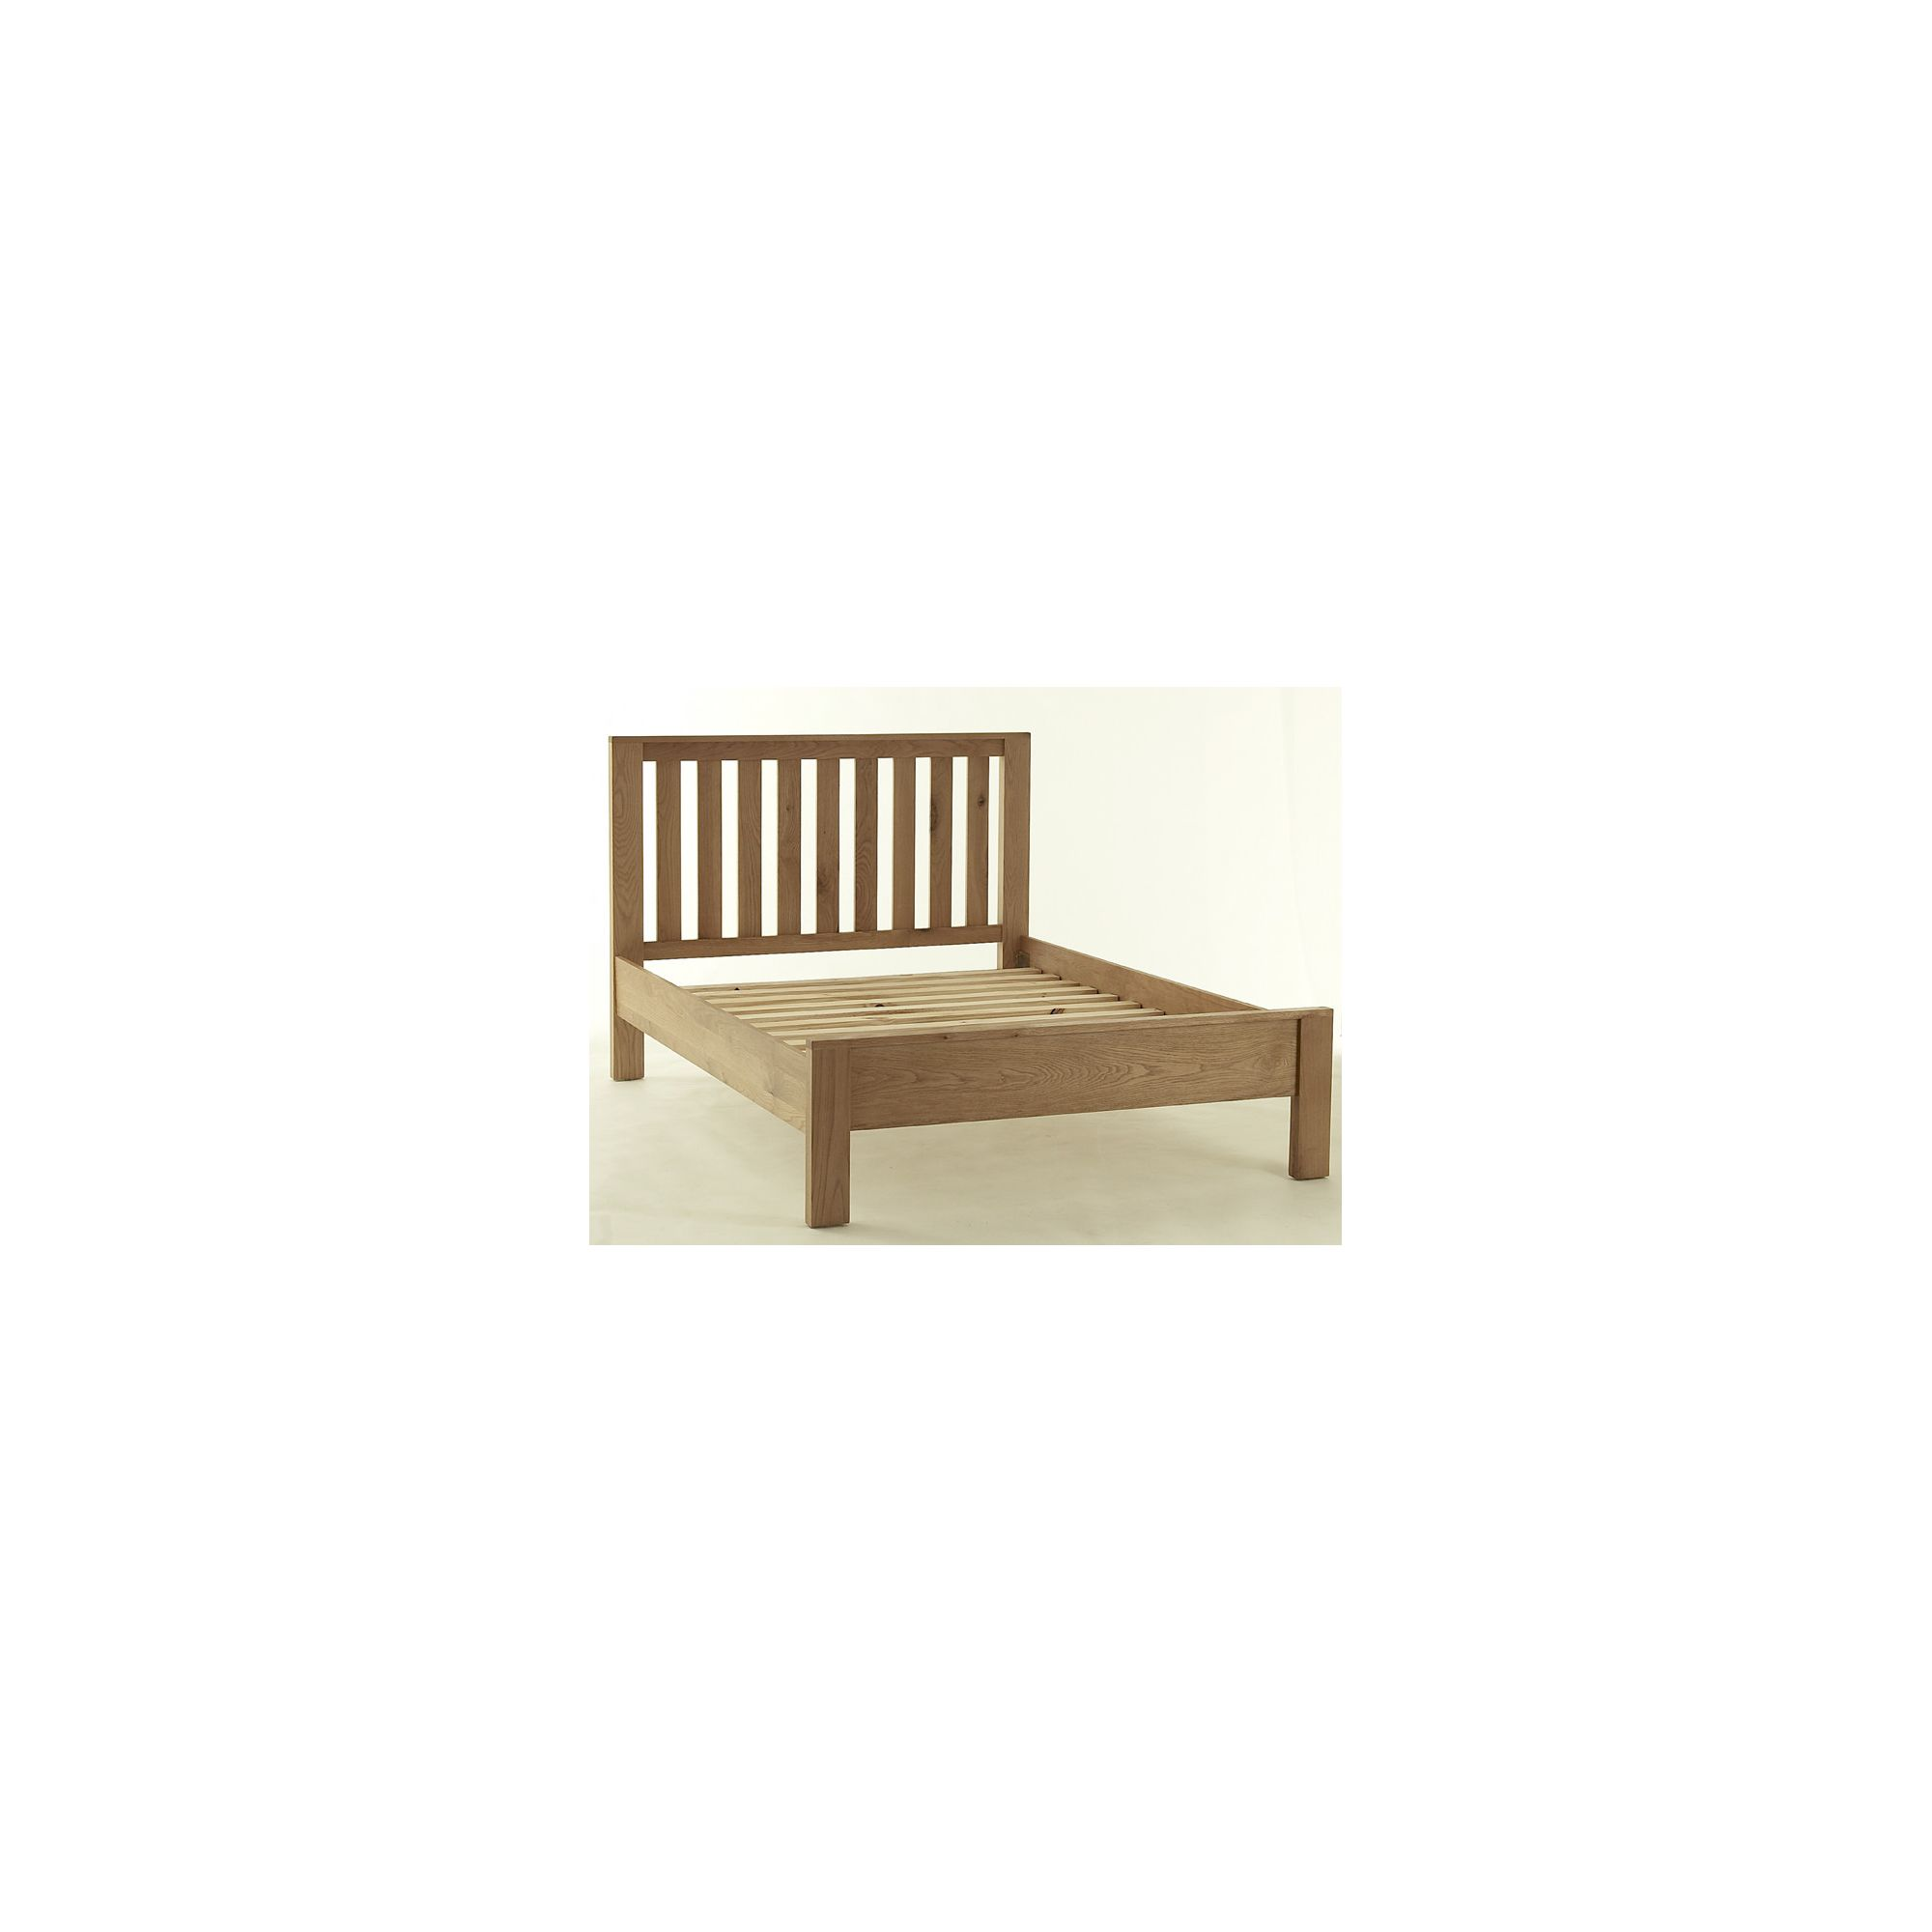 Thorndon Block Bed Frame - King at Tesco Direct